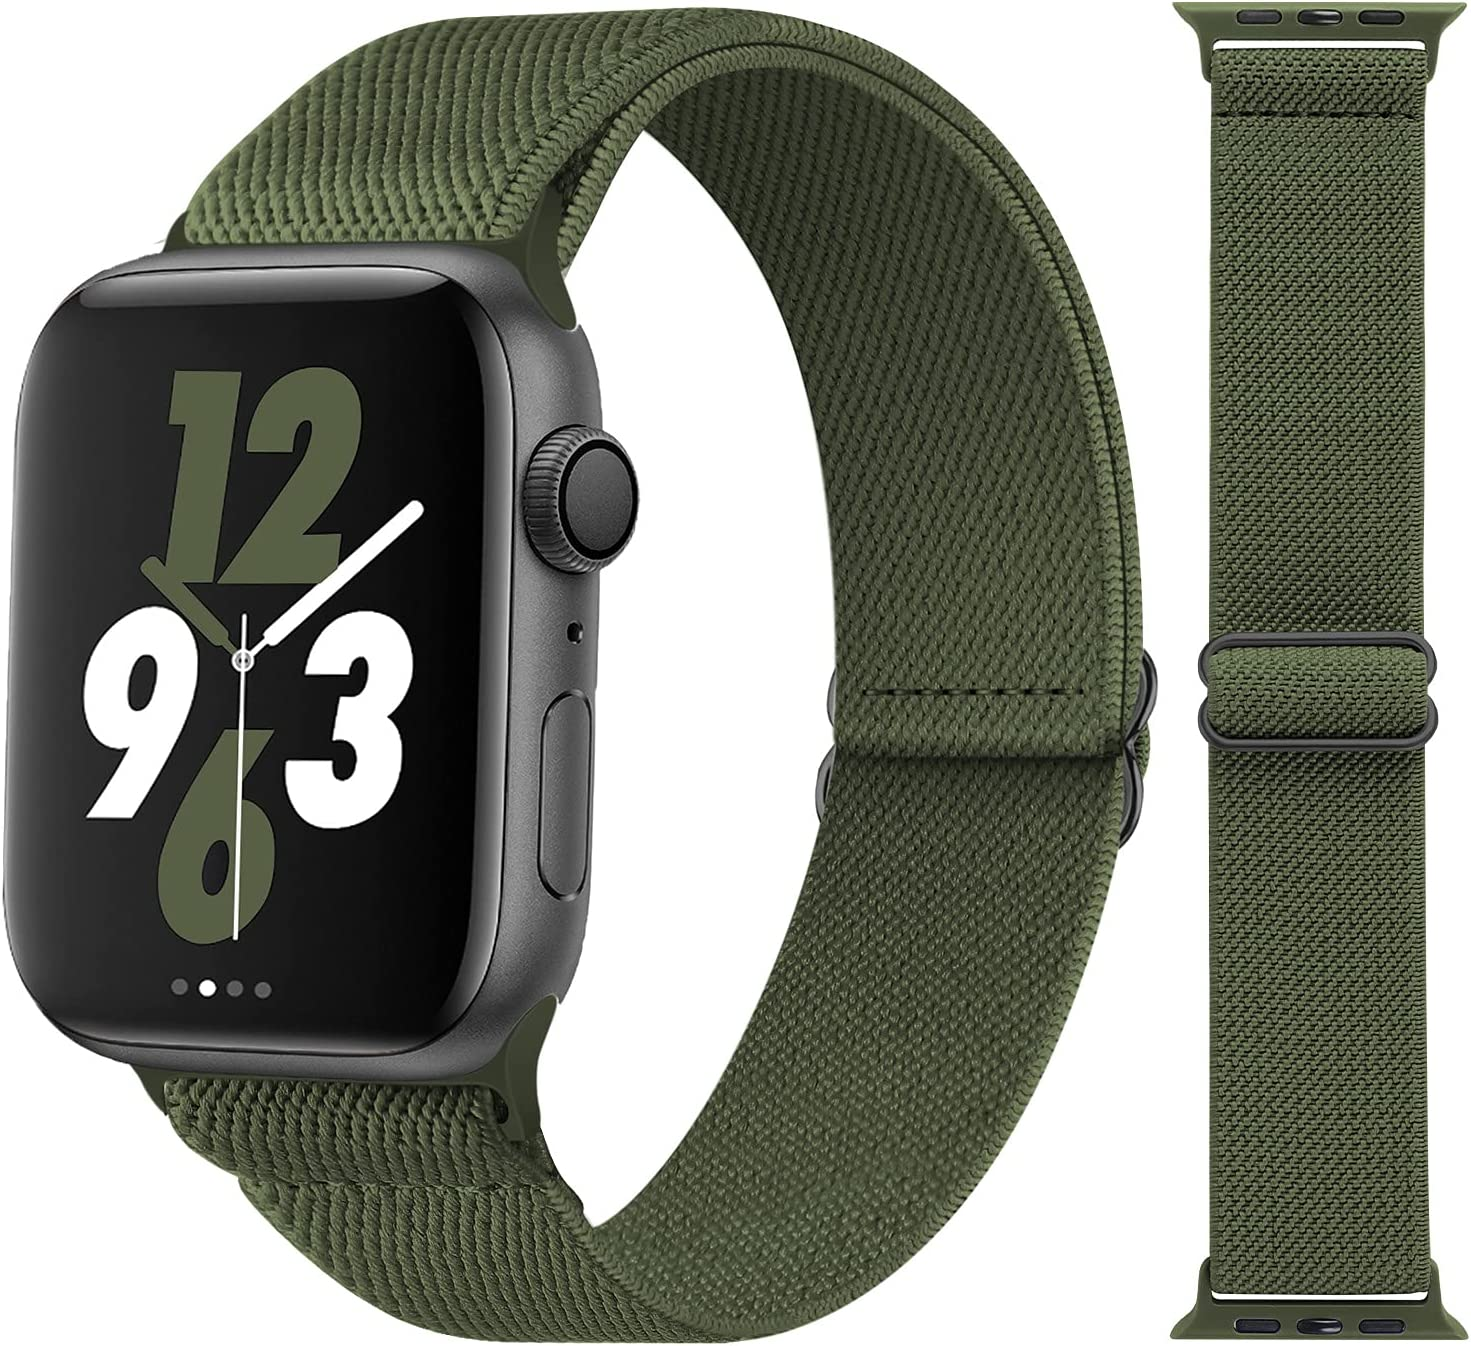 Acrbiutu Stretchy Solo Loop Nylon Bands Compatible with Apple Watch 38mm 40mm 42mm 44mm, Adjustable Braided Stretch Elastics Strap for iWatch Series 6/5/4/3/2/1 SE, Army Green 42mm/44mm